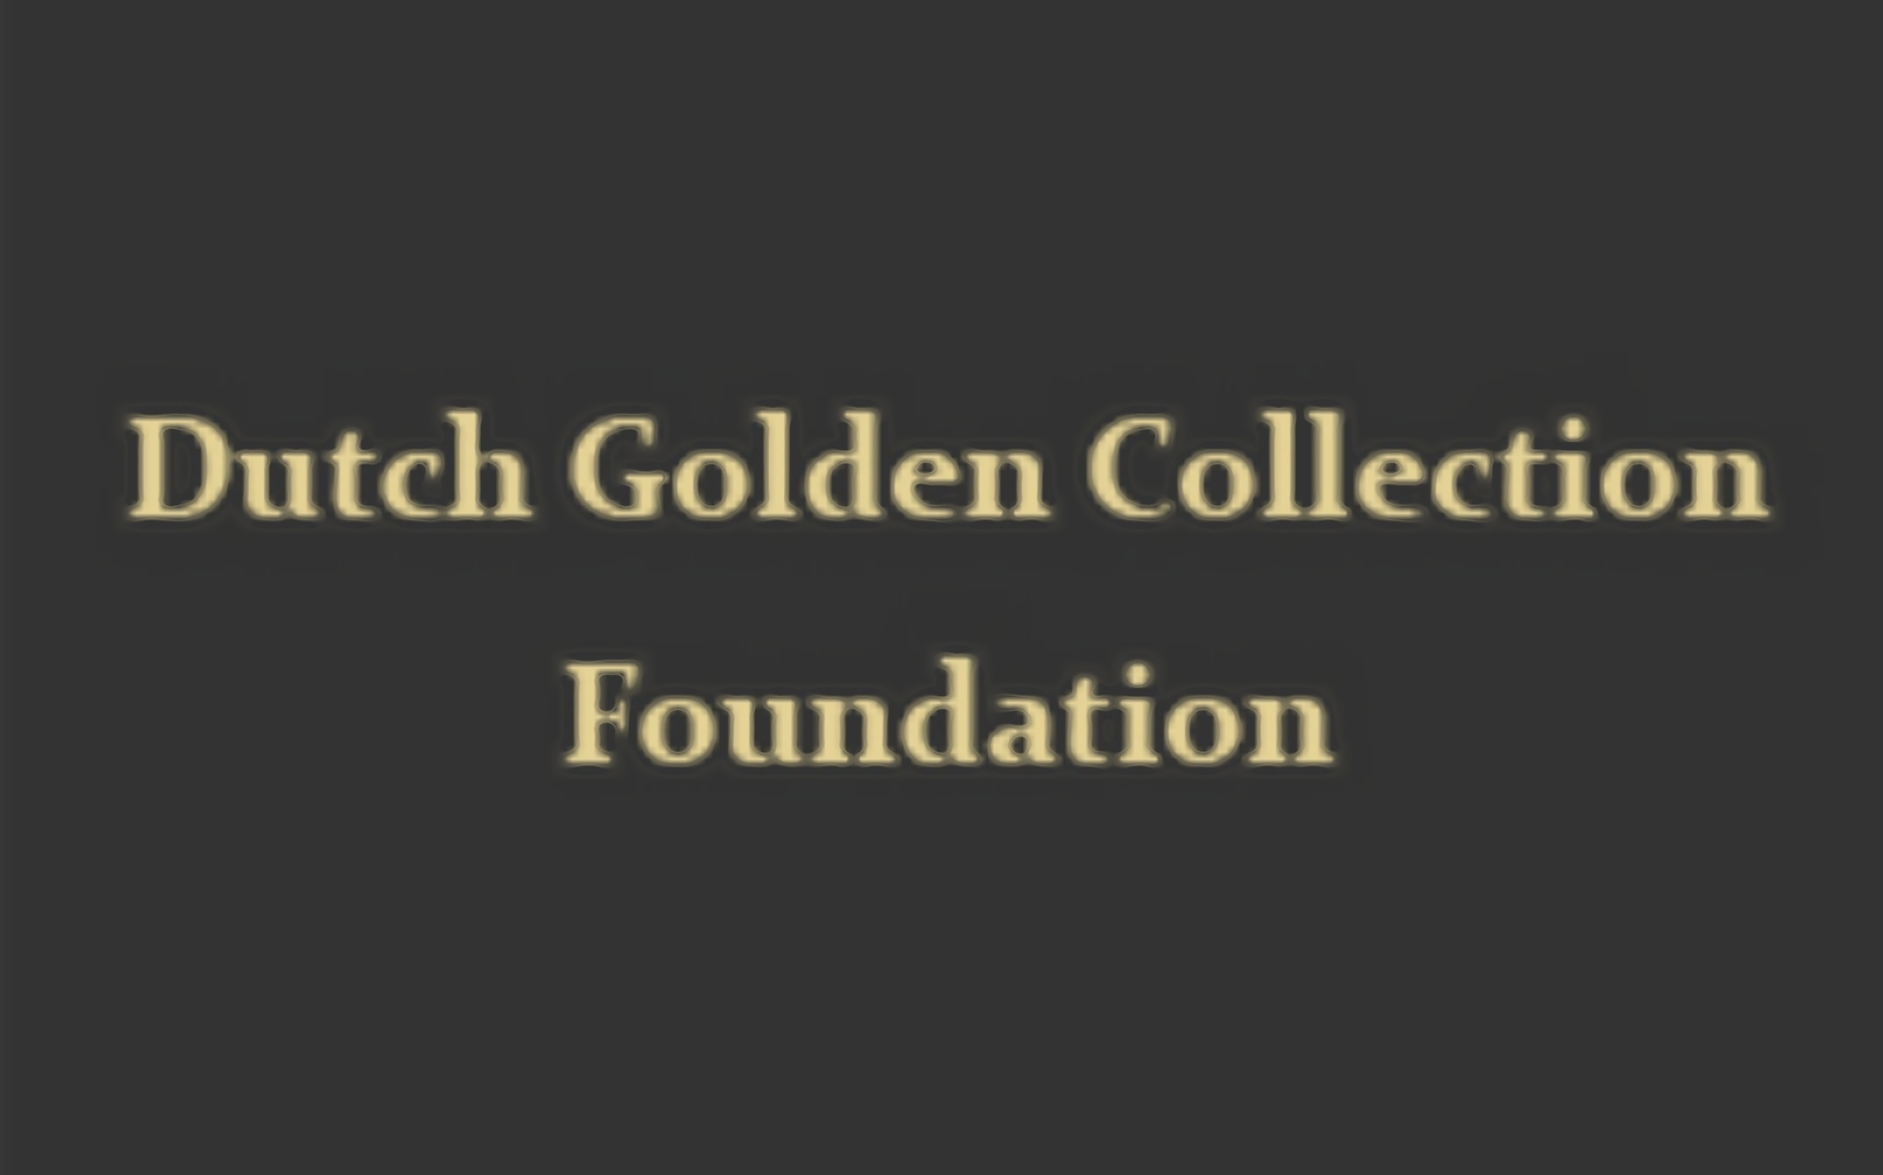 Stichting Dutch Golden Collection Foundation